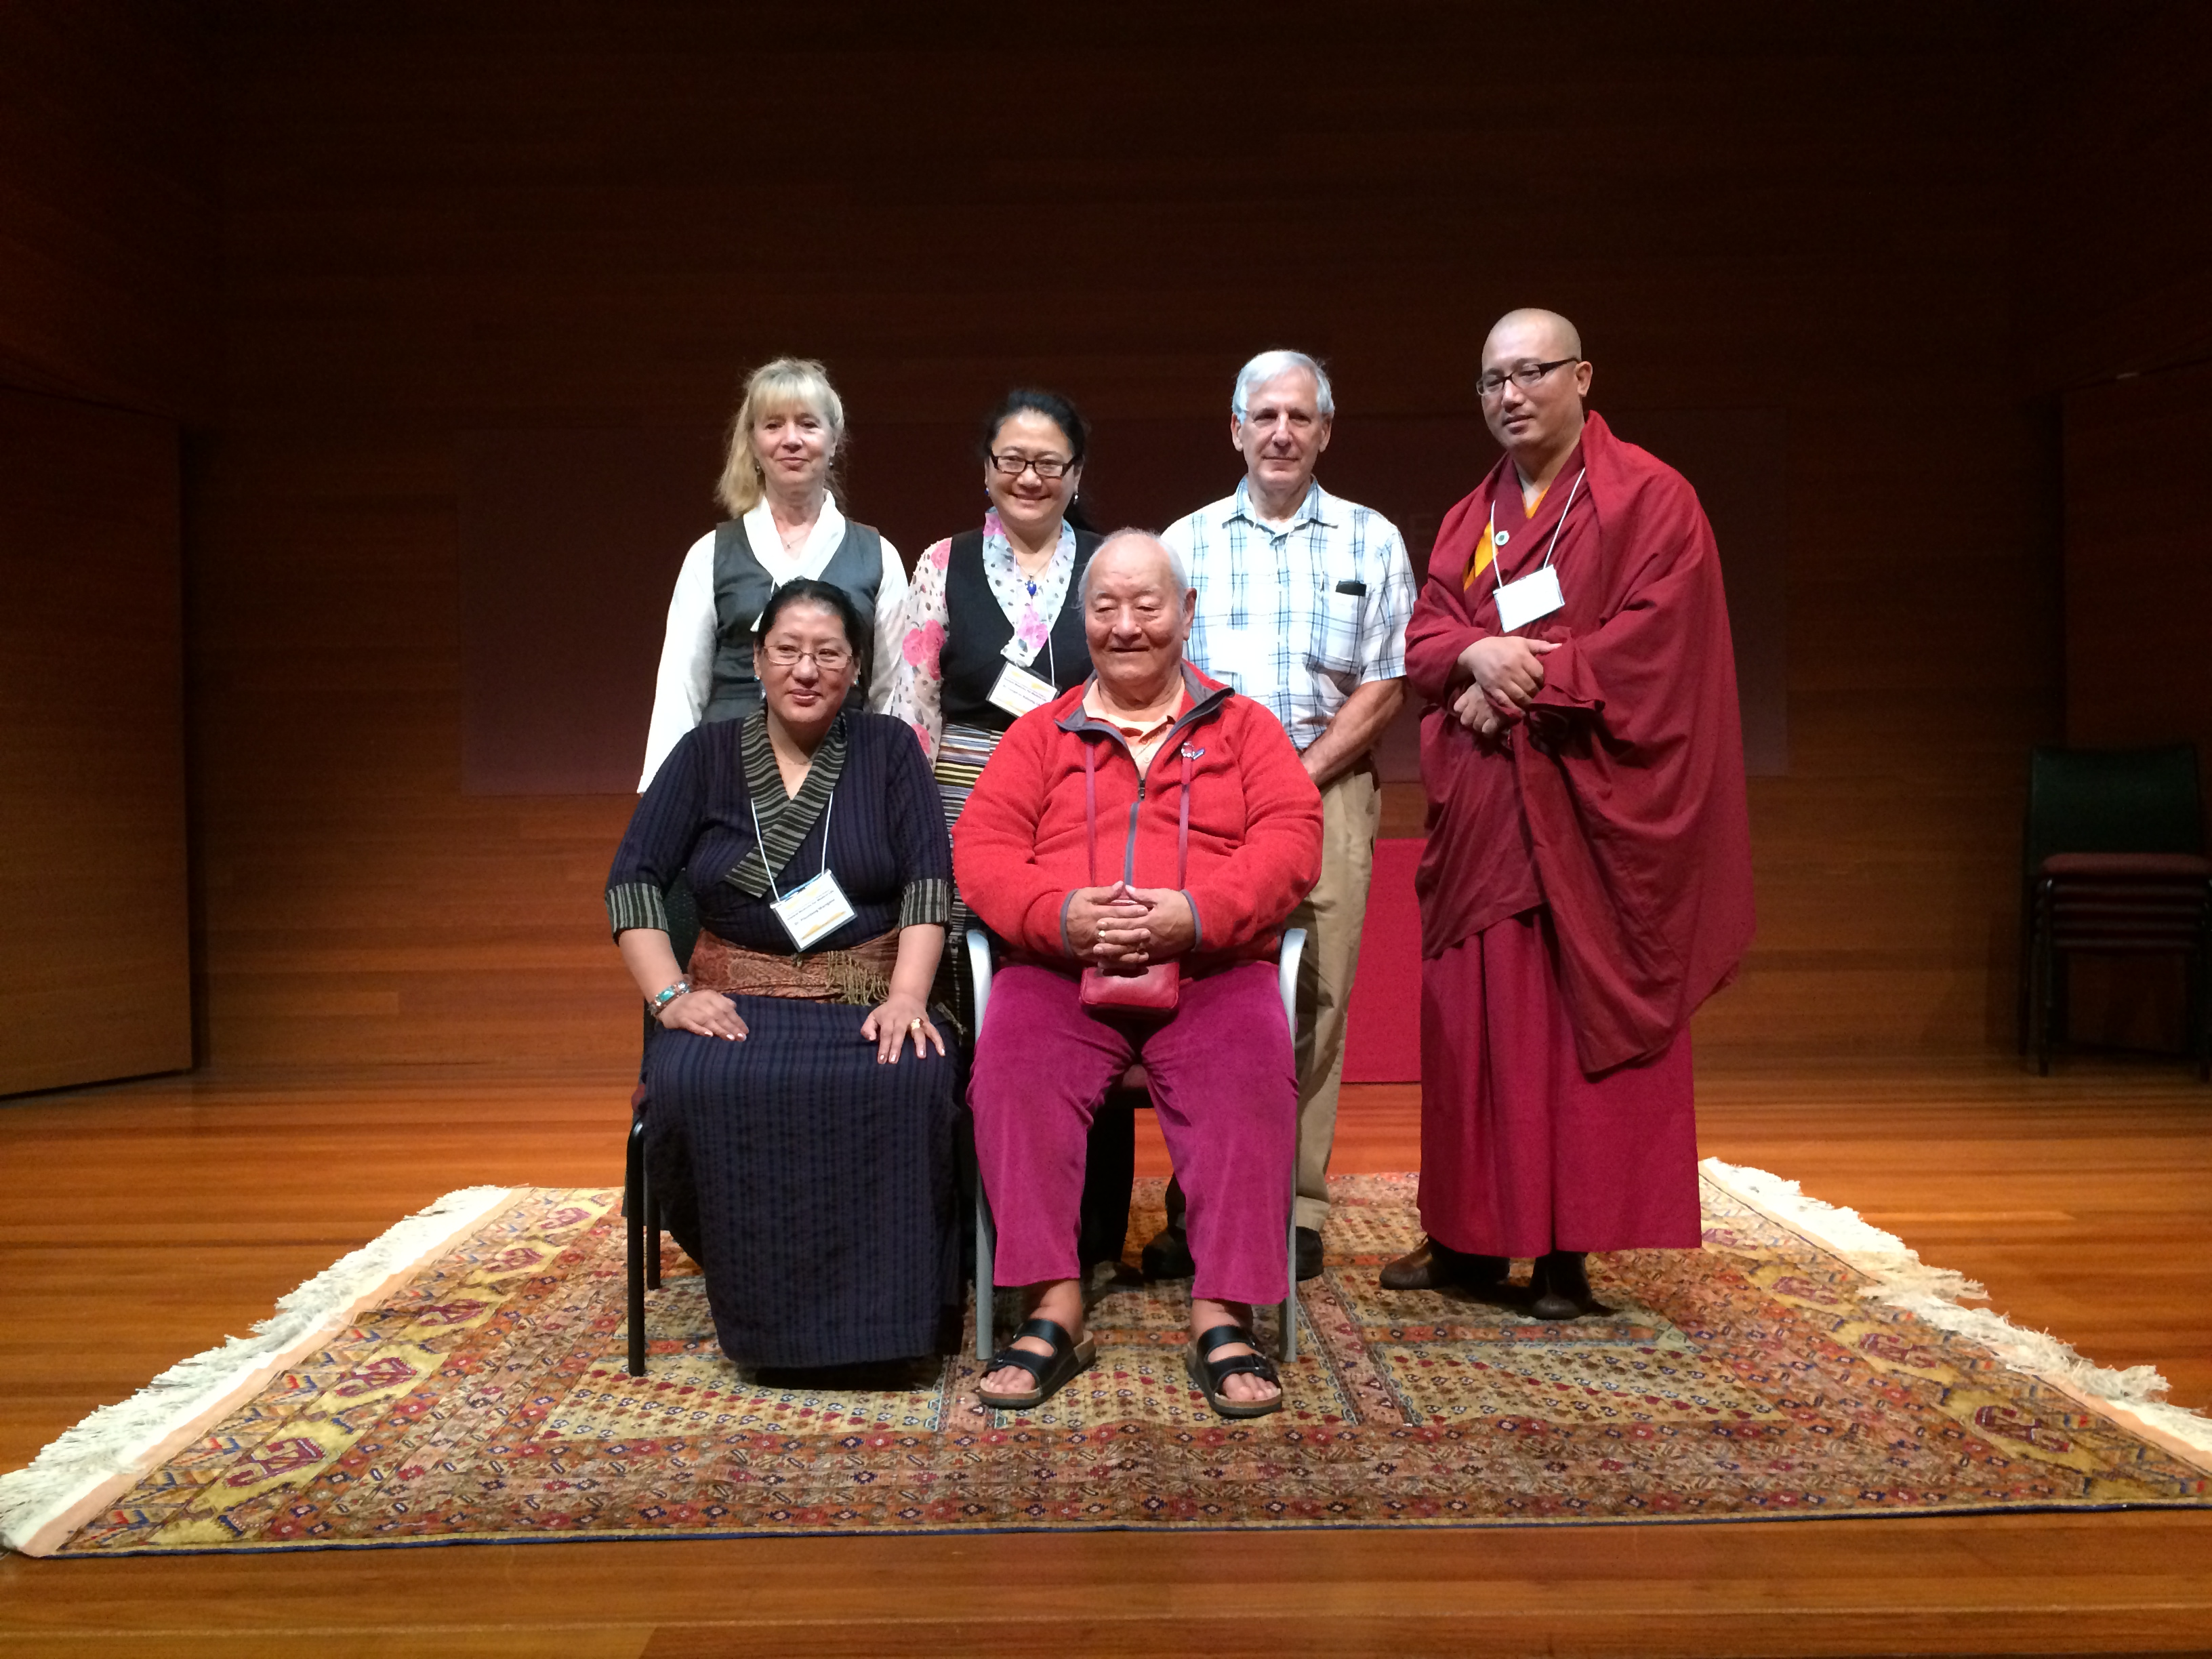 ATMA Board of Directors with Chögyal Namkhai Norbu. From left to right, Top row standing: Dr. Anasuya Weil, Dr. Kalzang Yangdron, Dr. Gerry Steinberg, Dr. Kunchok Gyaltsen Bottom row seated: Dr. Phuntsog Wangmo, Chögyal Namkhai Norbu